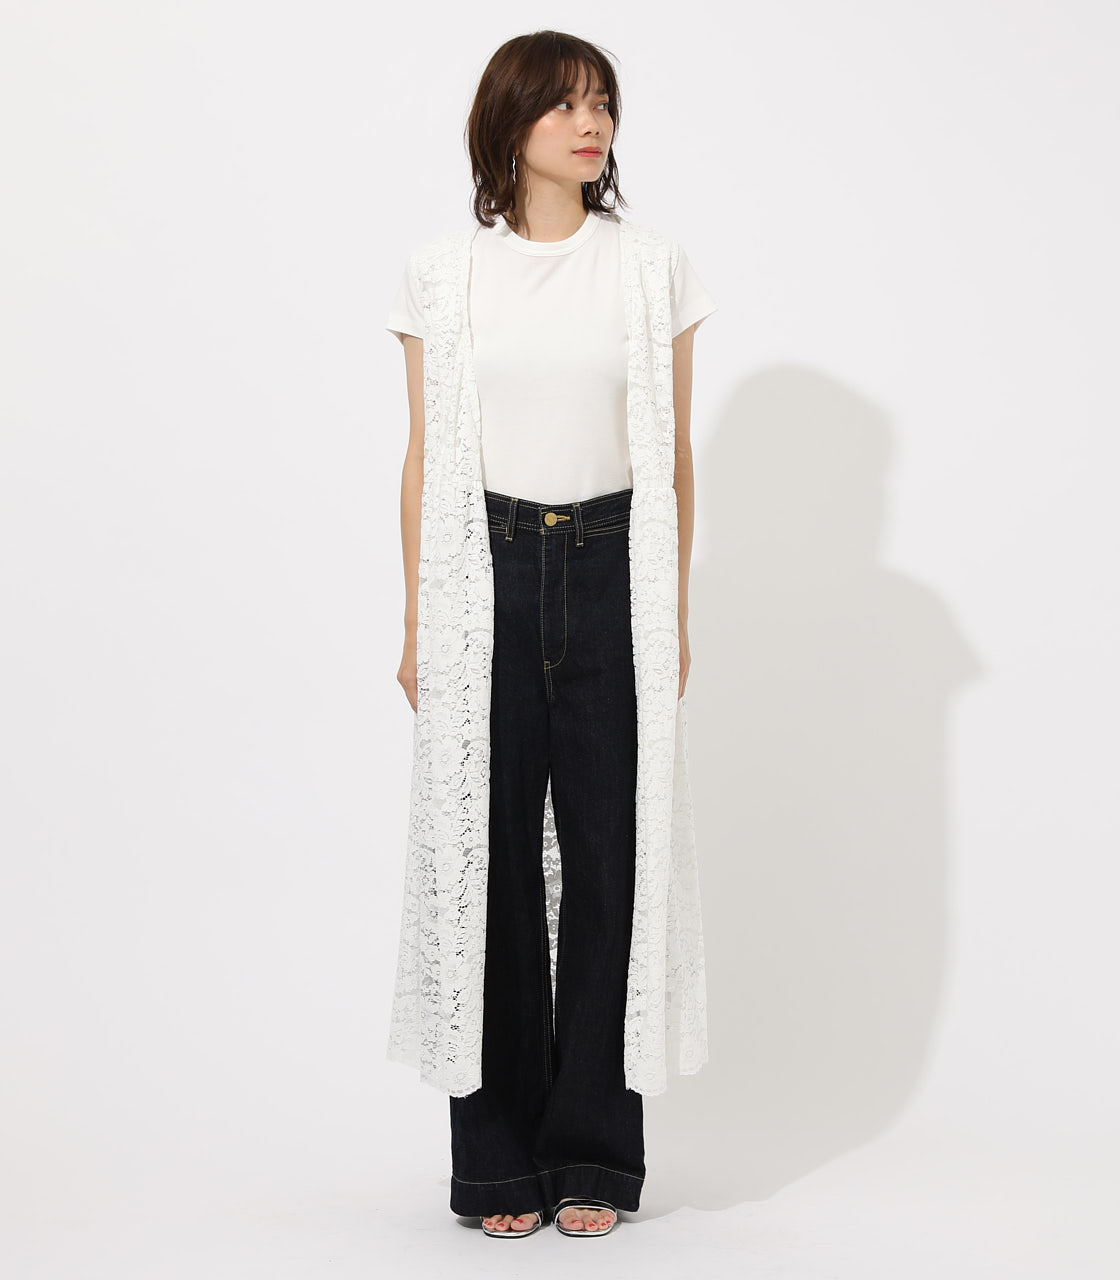 【AZUL BY MOUSSY】SCALLOP LACE GILET 詳細画像 O/WHT 4